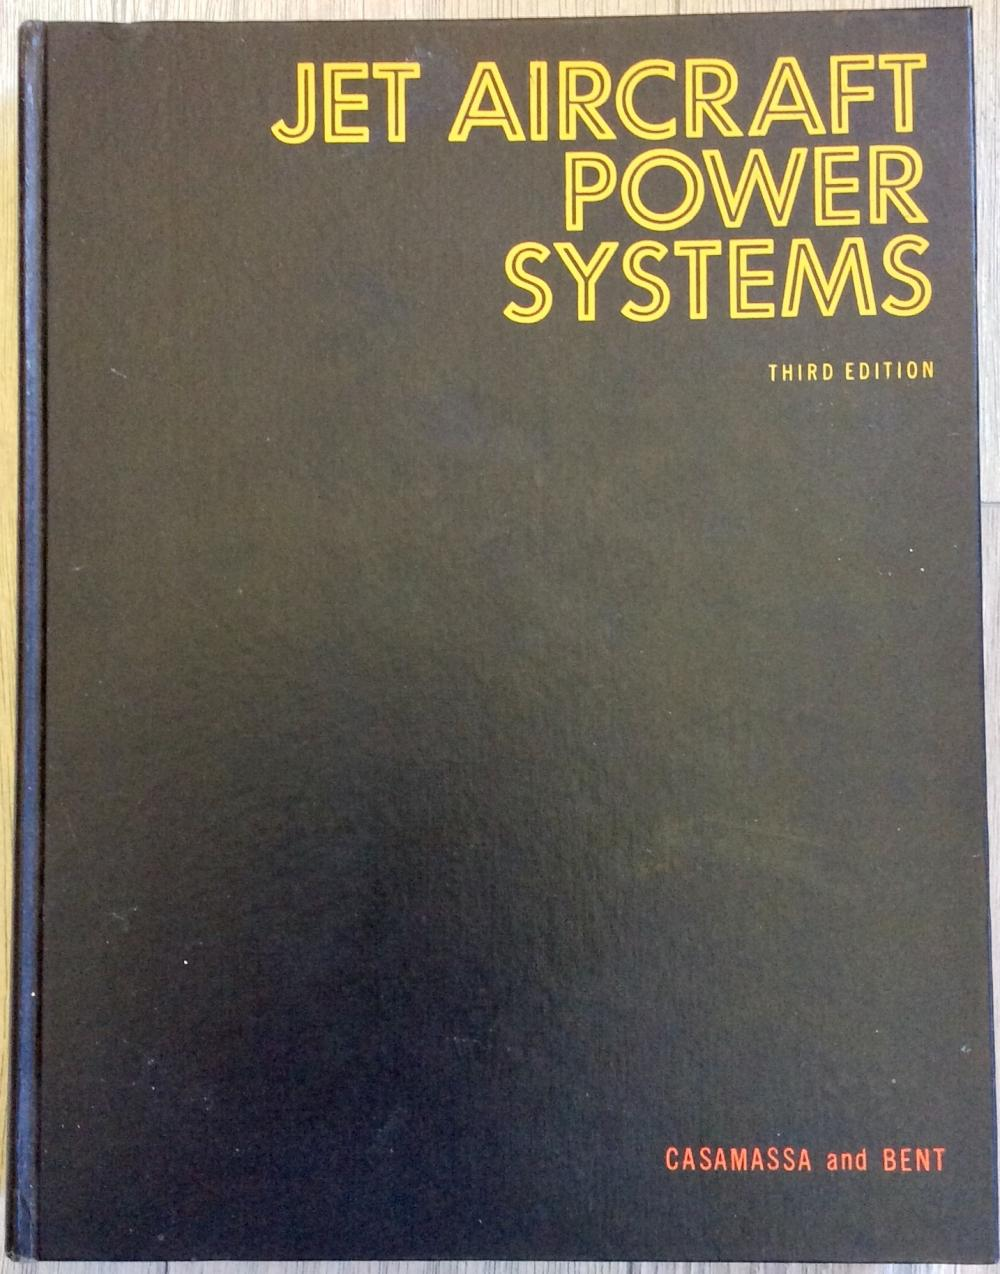 """Jet Aircraft Power Systems"" by Casamassa & Bent VINTAGE 1965 Jet Engine Aviation Technology Hardcover"